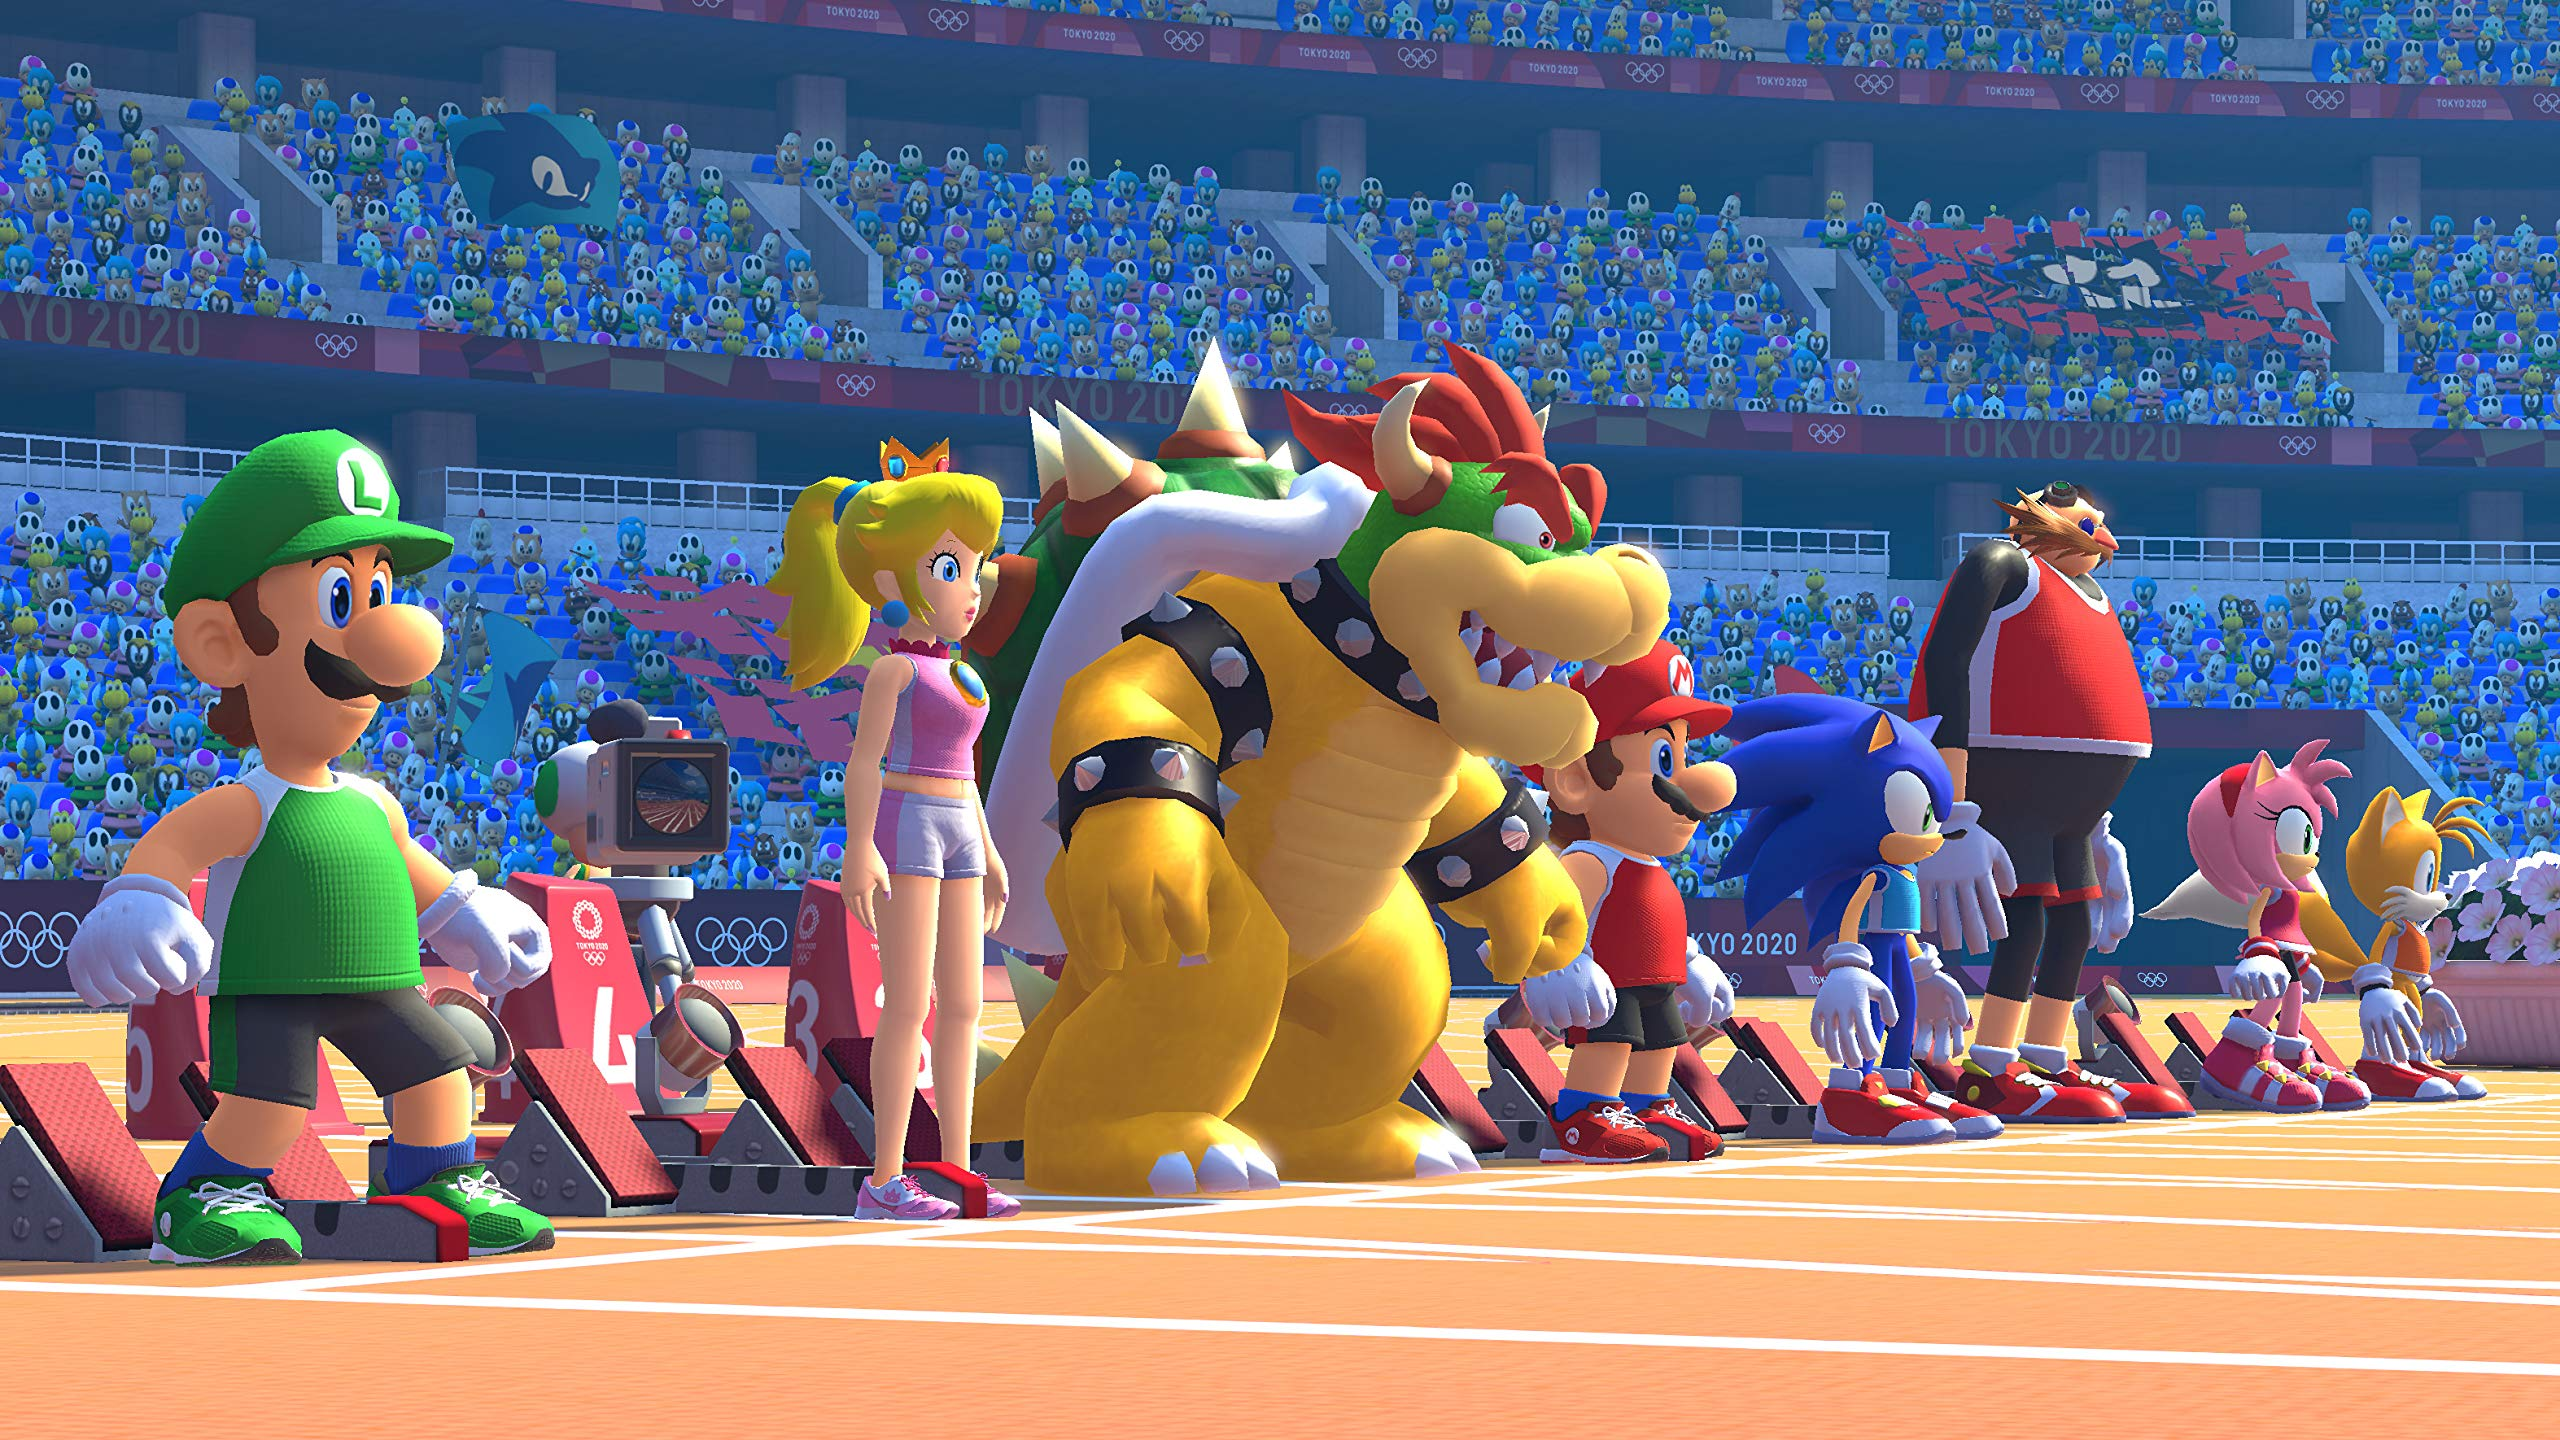 SEGA accidentally shares the full Mario & Sonic at the Tokyo 2020 Olympic Games roster